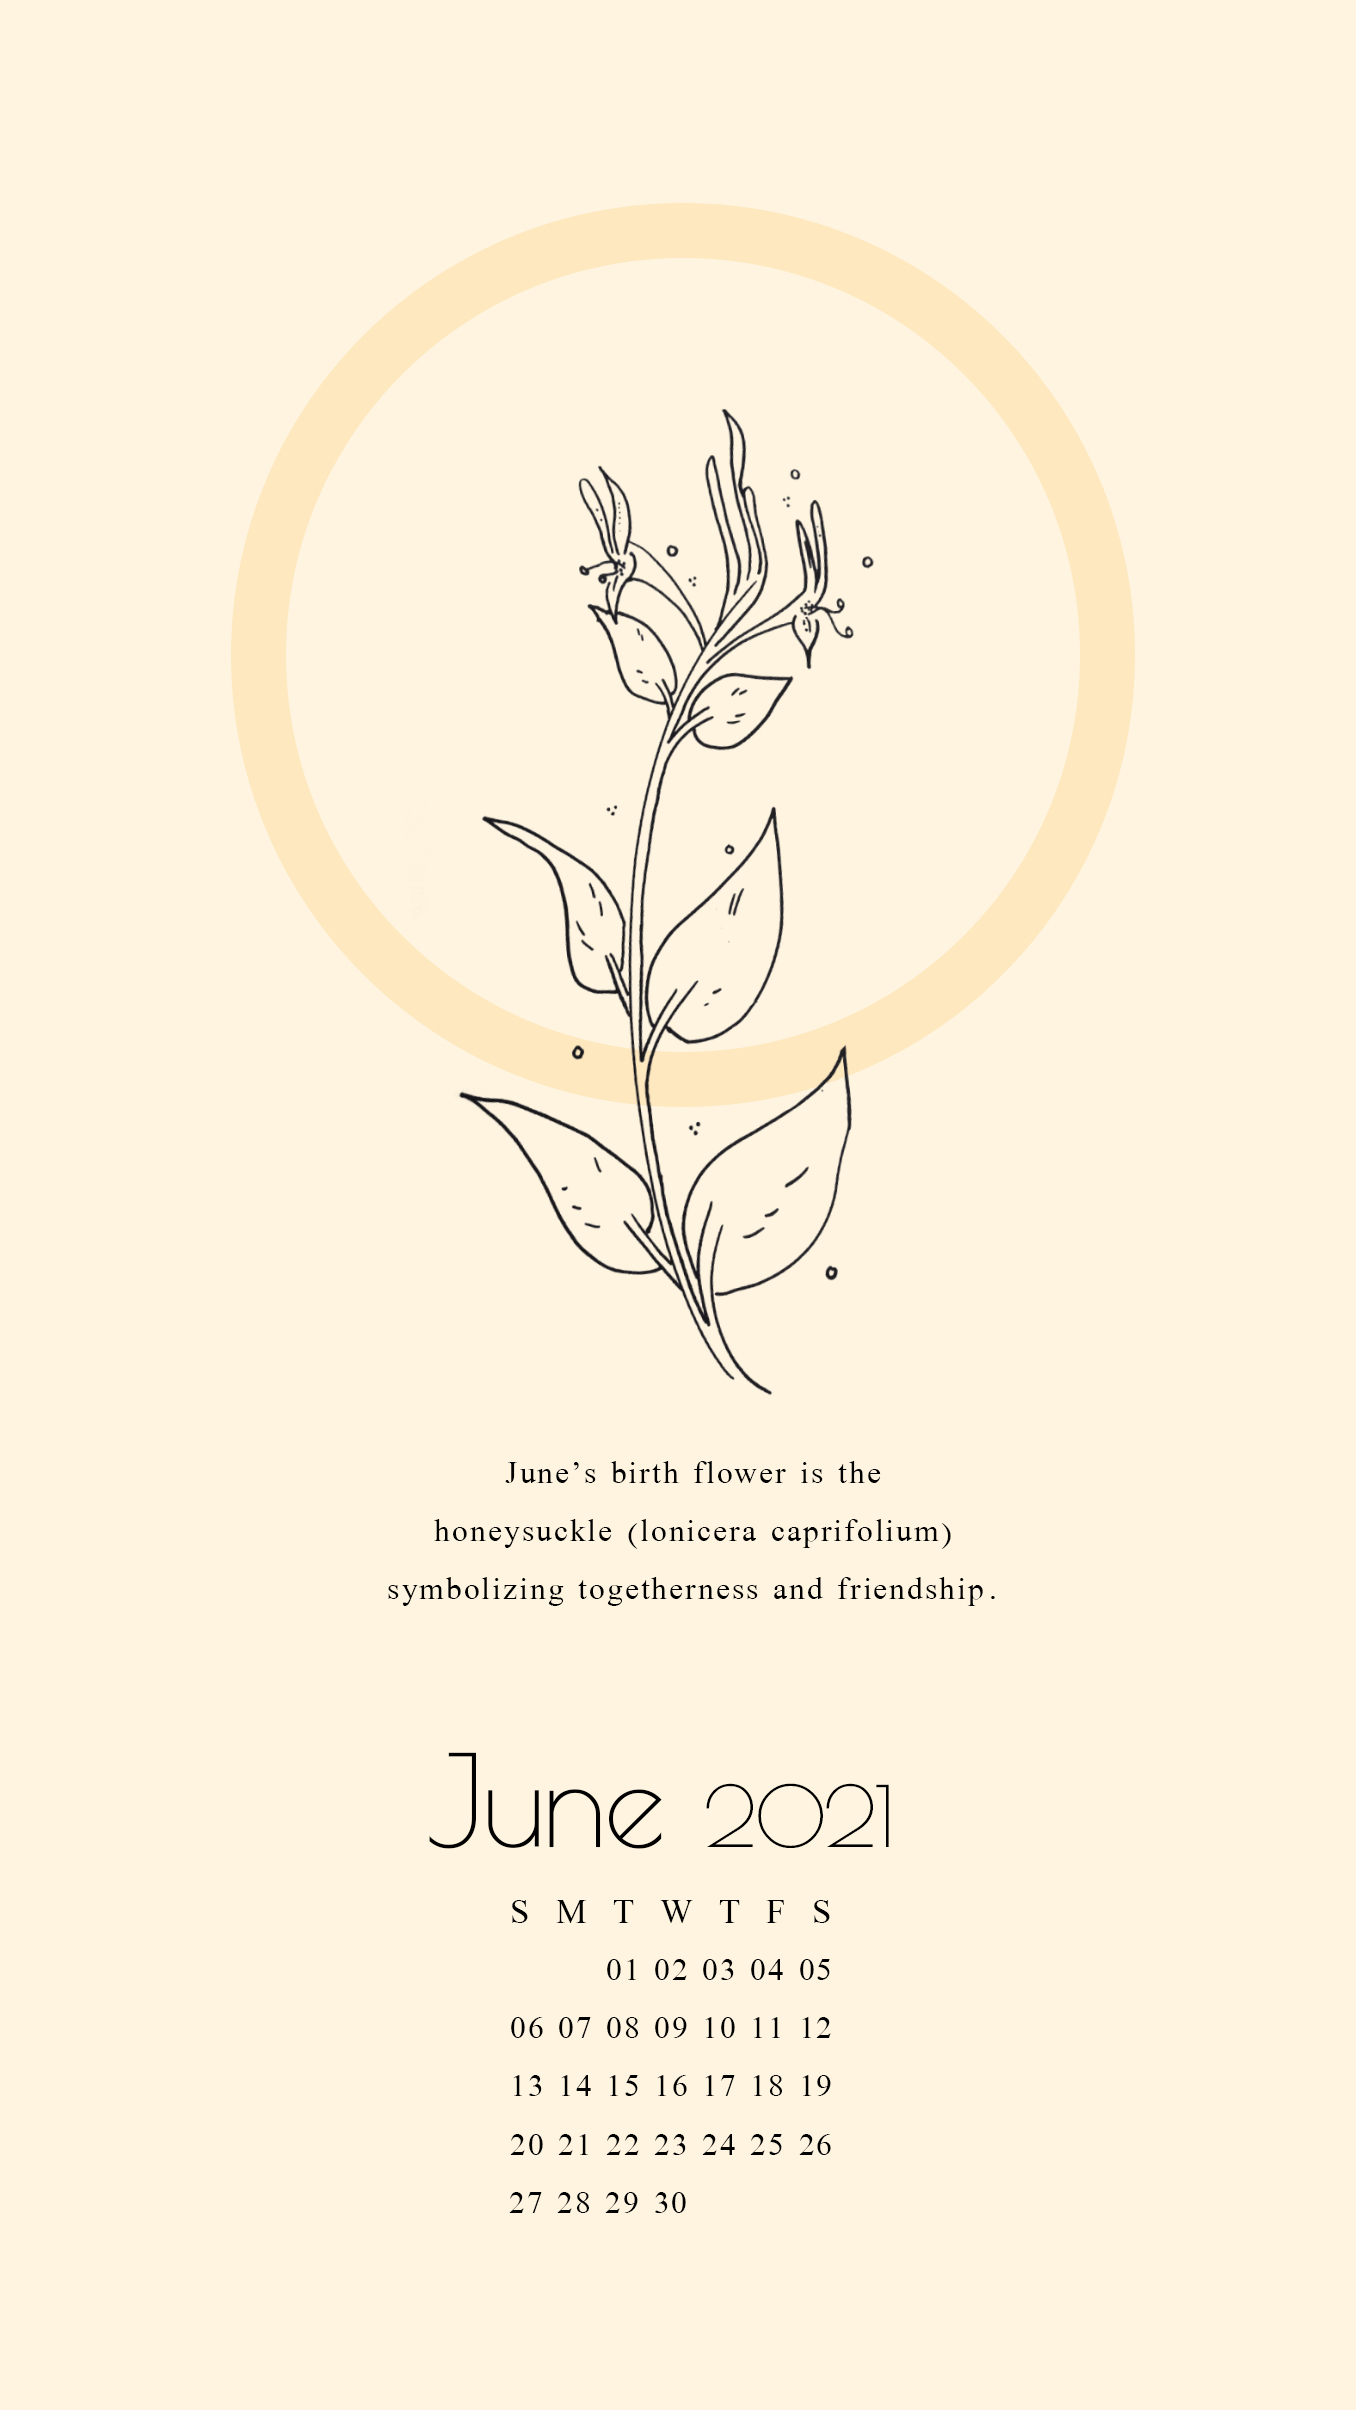 June 2021 walllpaper